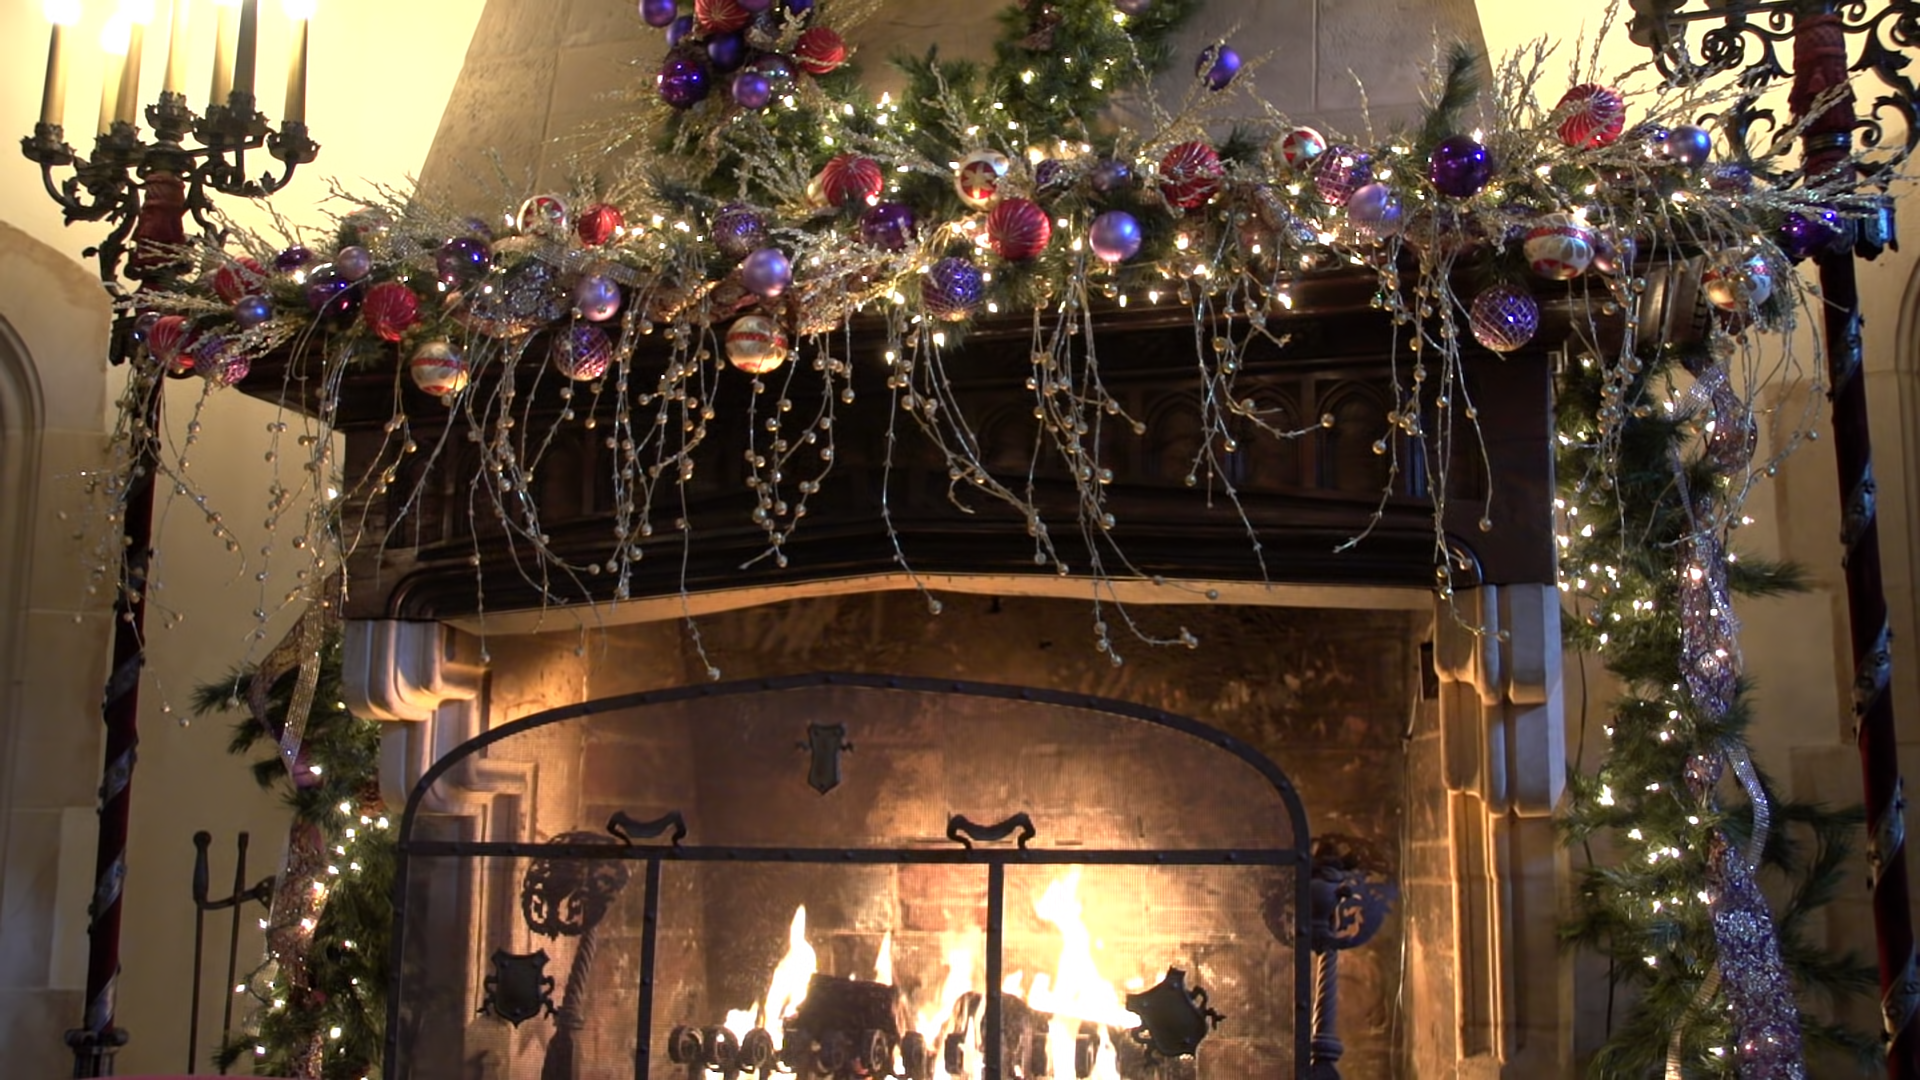 Festive bulbs and sparkling lights hang over a crackling, wood fireplace in a decorated living room.